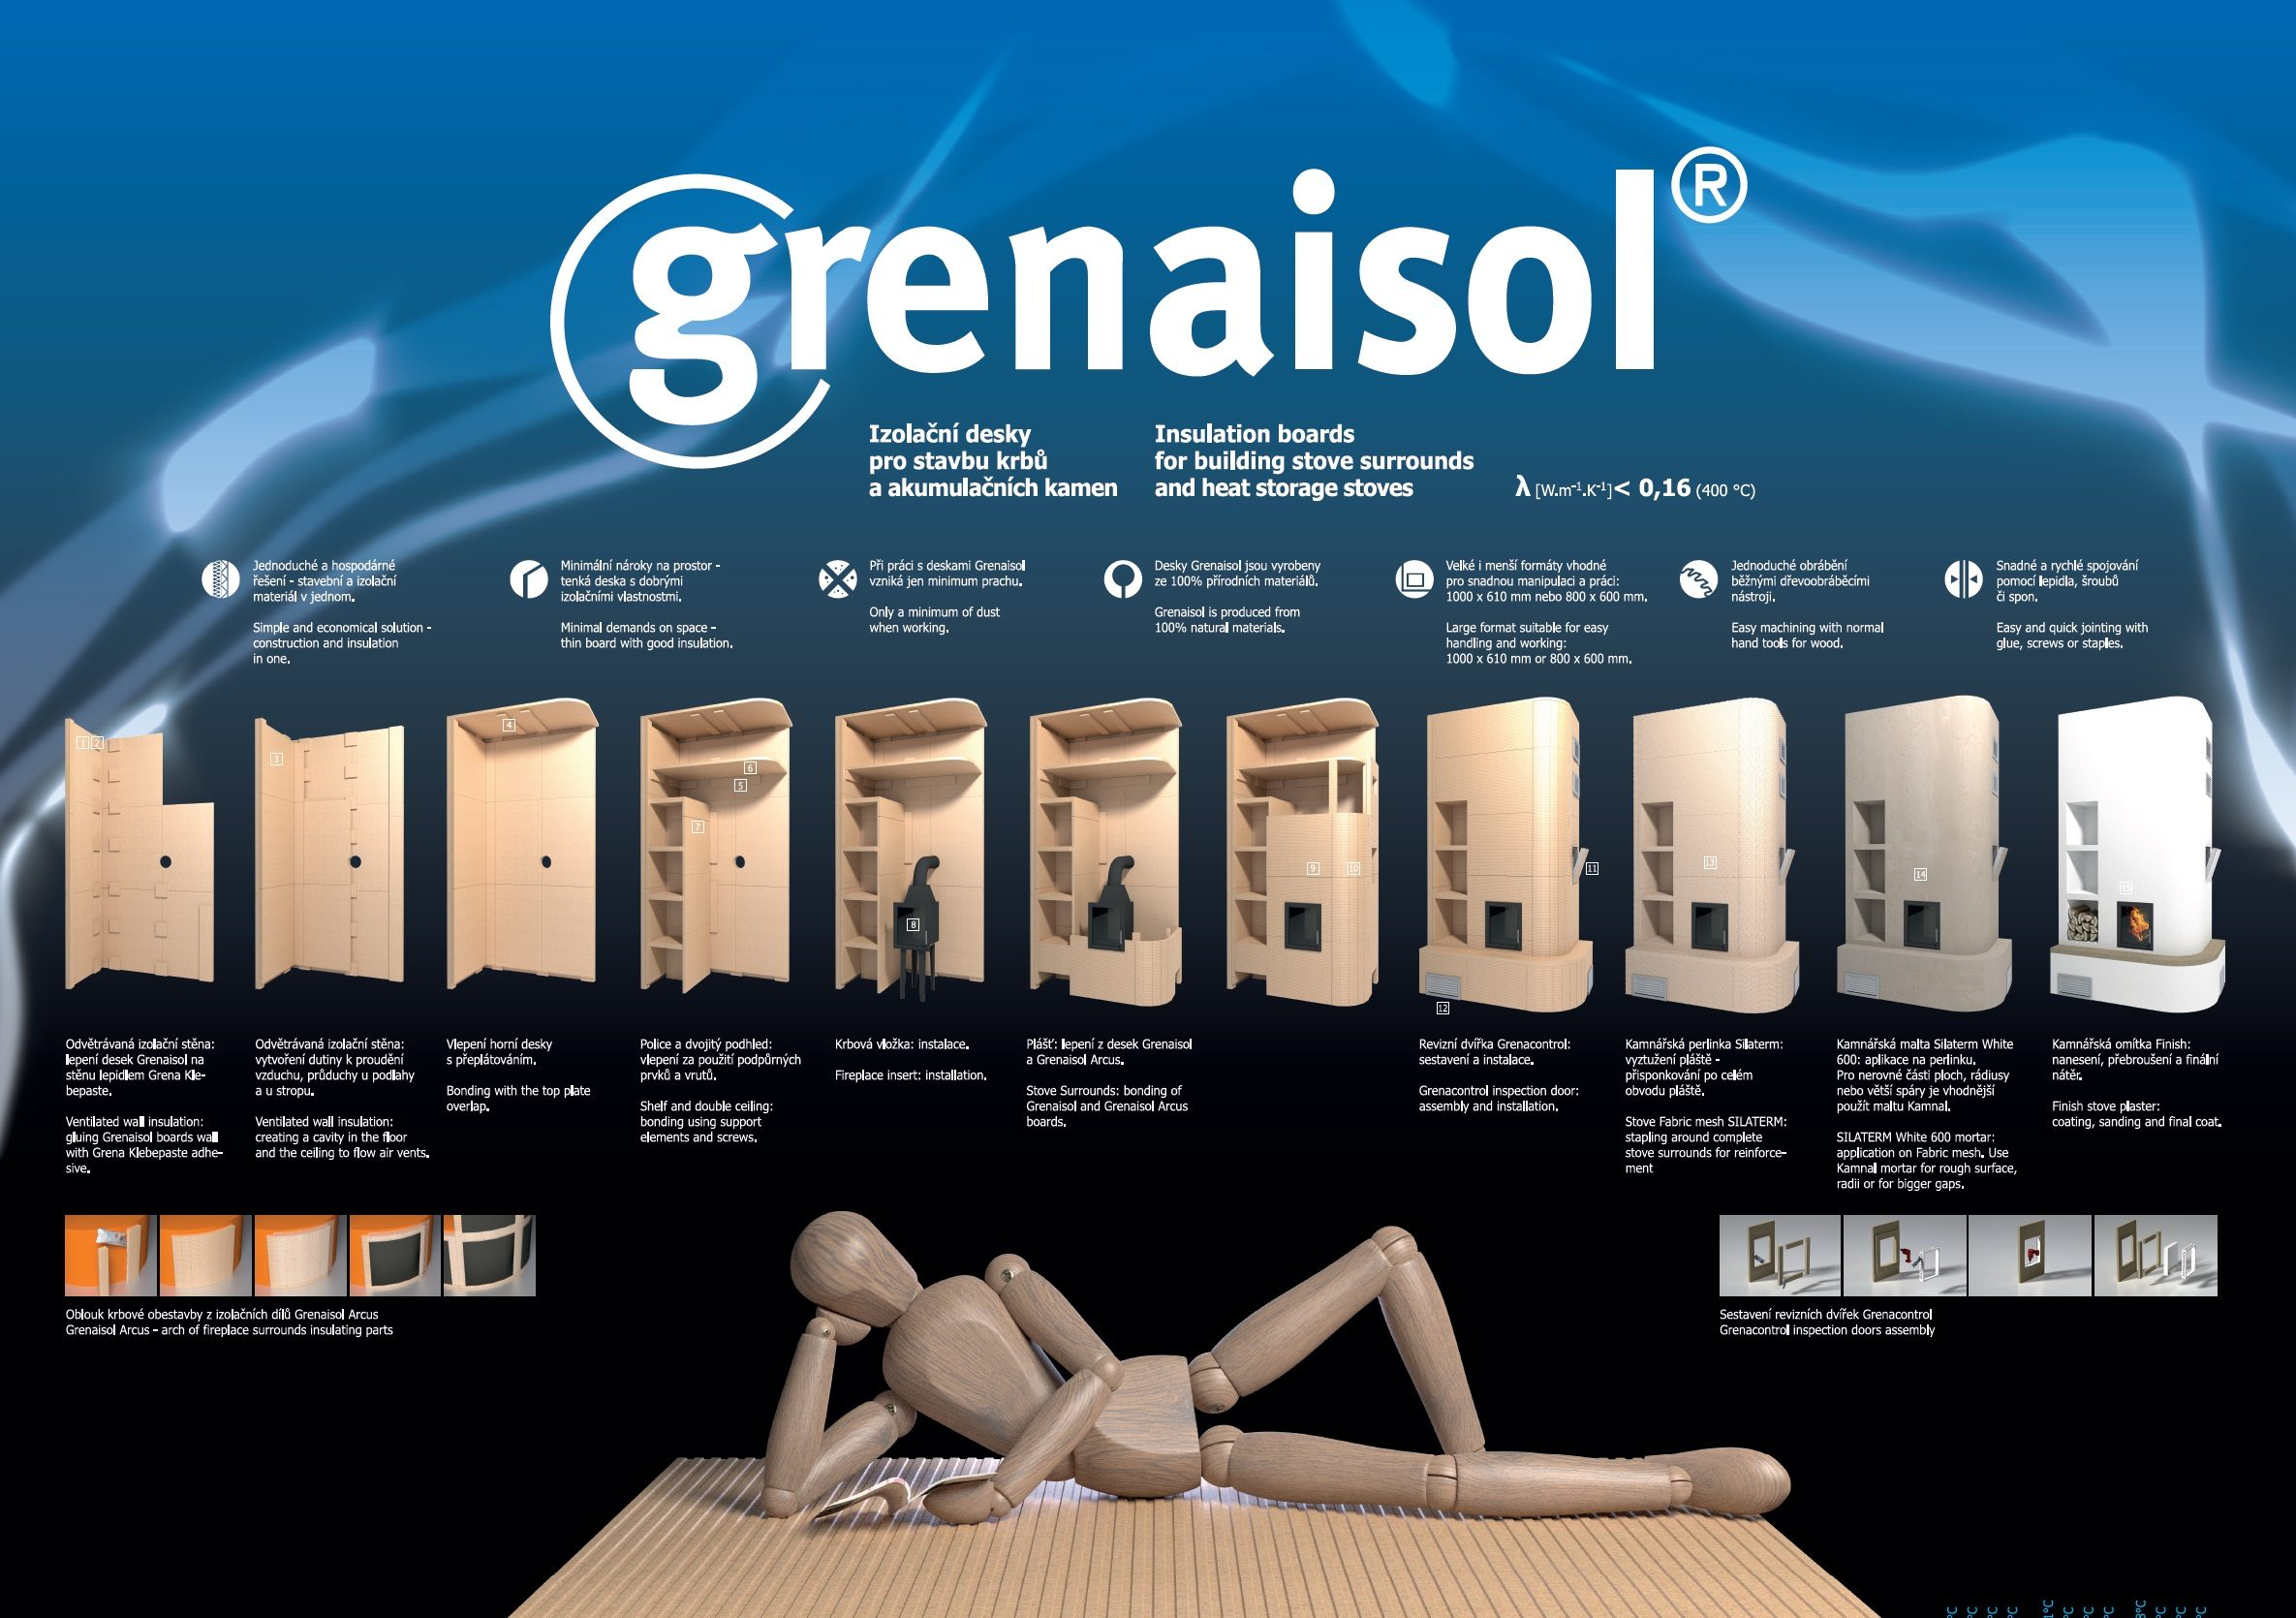 News insulation board Grenaisol